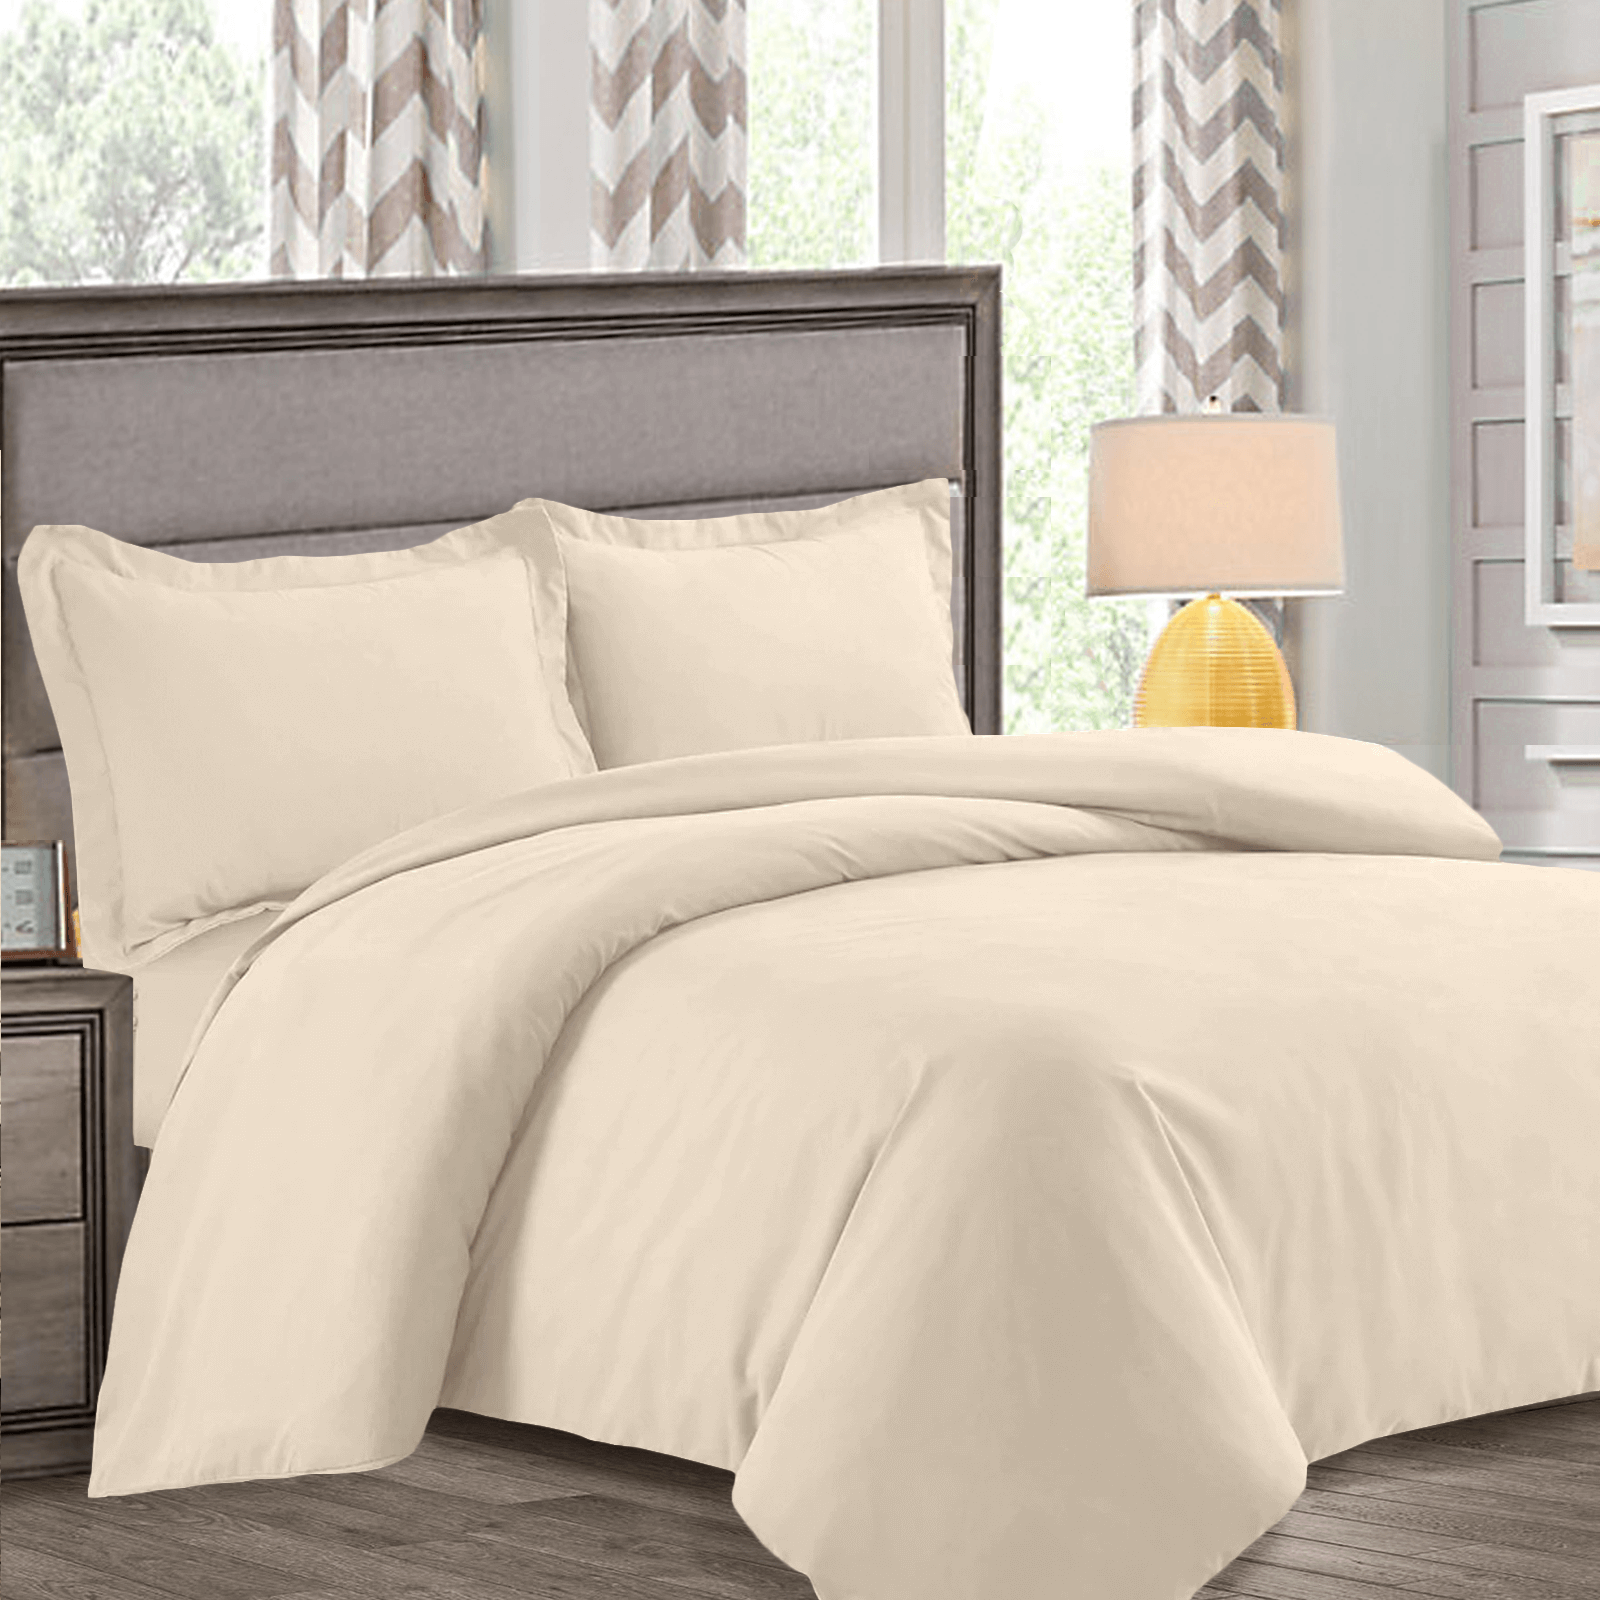 Soft Duvet Covers Nestl Bedding Duvet Cover Protects And Covers Your Comforter Duvet Insert Luxury 100 Super Soft Microfiber Full Size Color Cream Beige 3 Piece